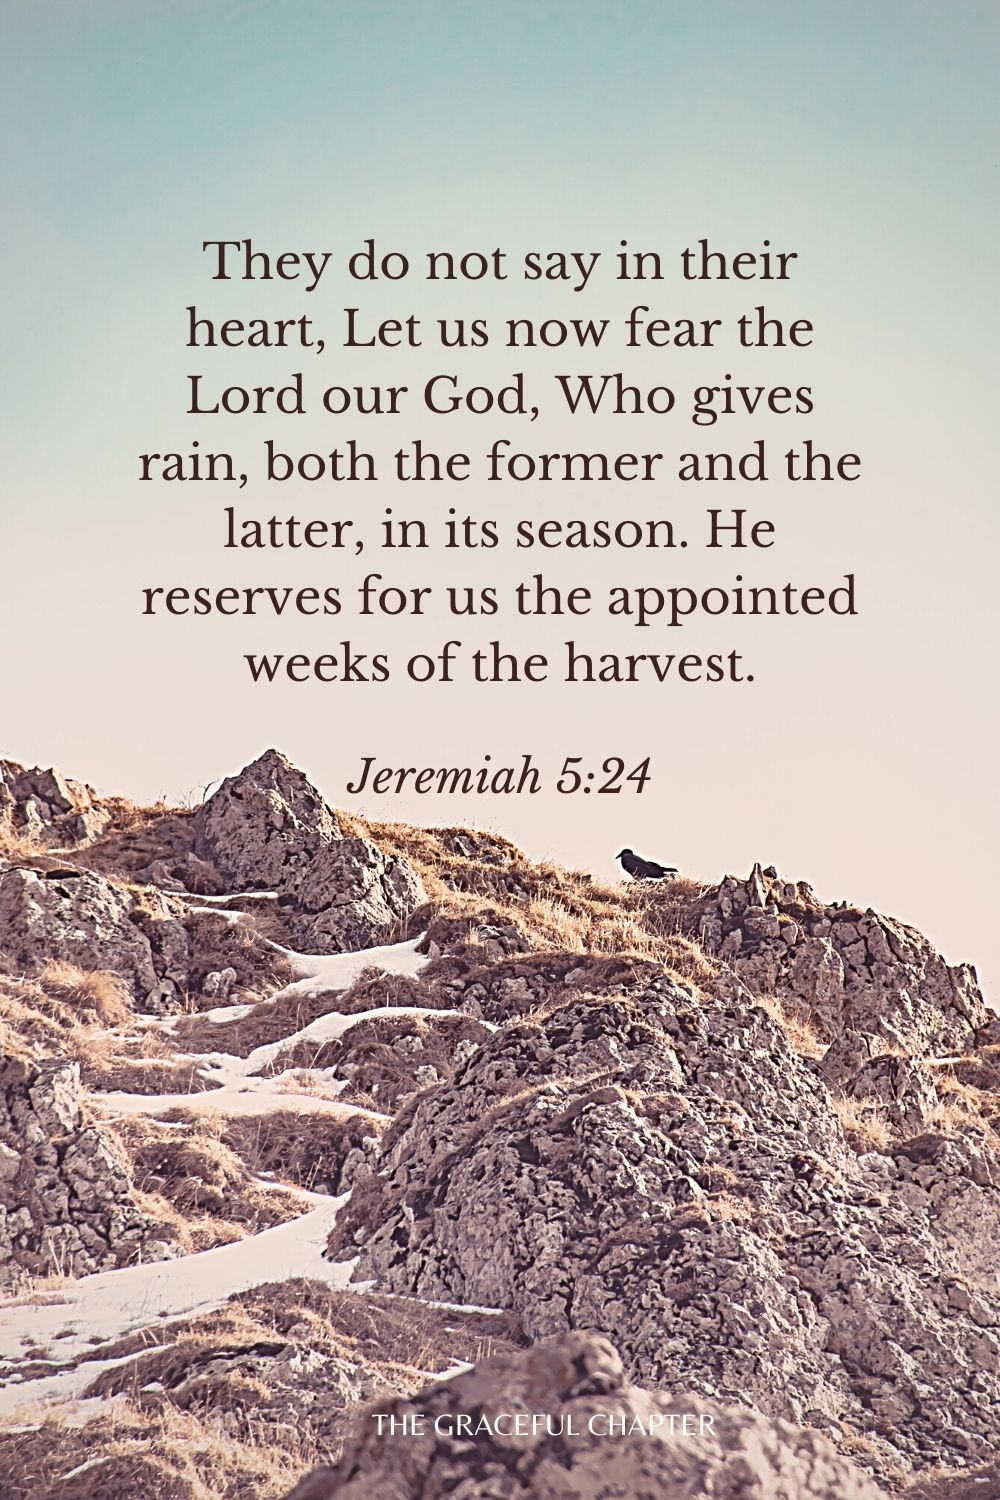 They do not say in their heart, Let us now fear the Lord our God, Who gives rain, both the former and the latter, in its season. He reserves for us the appointed weeks of the harvest. Jeremiah 5:24